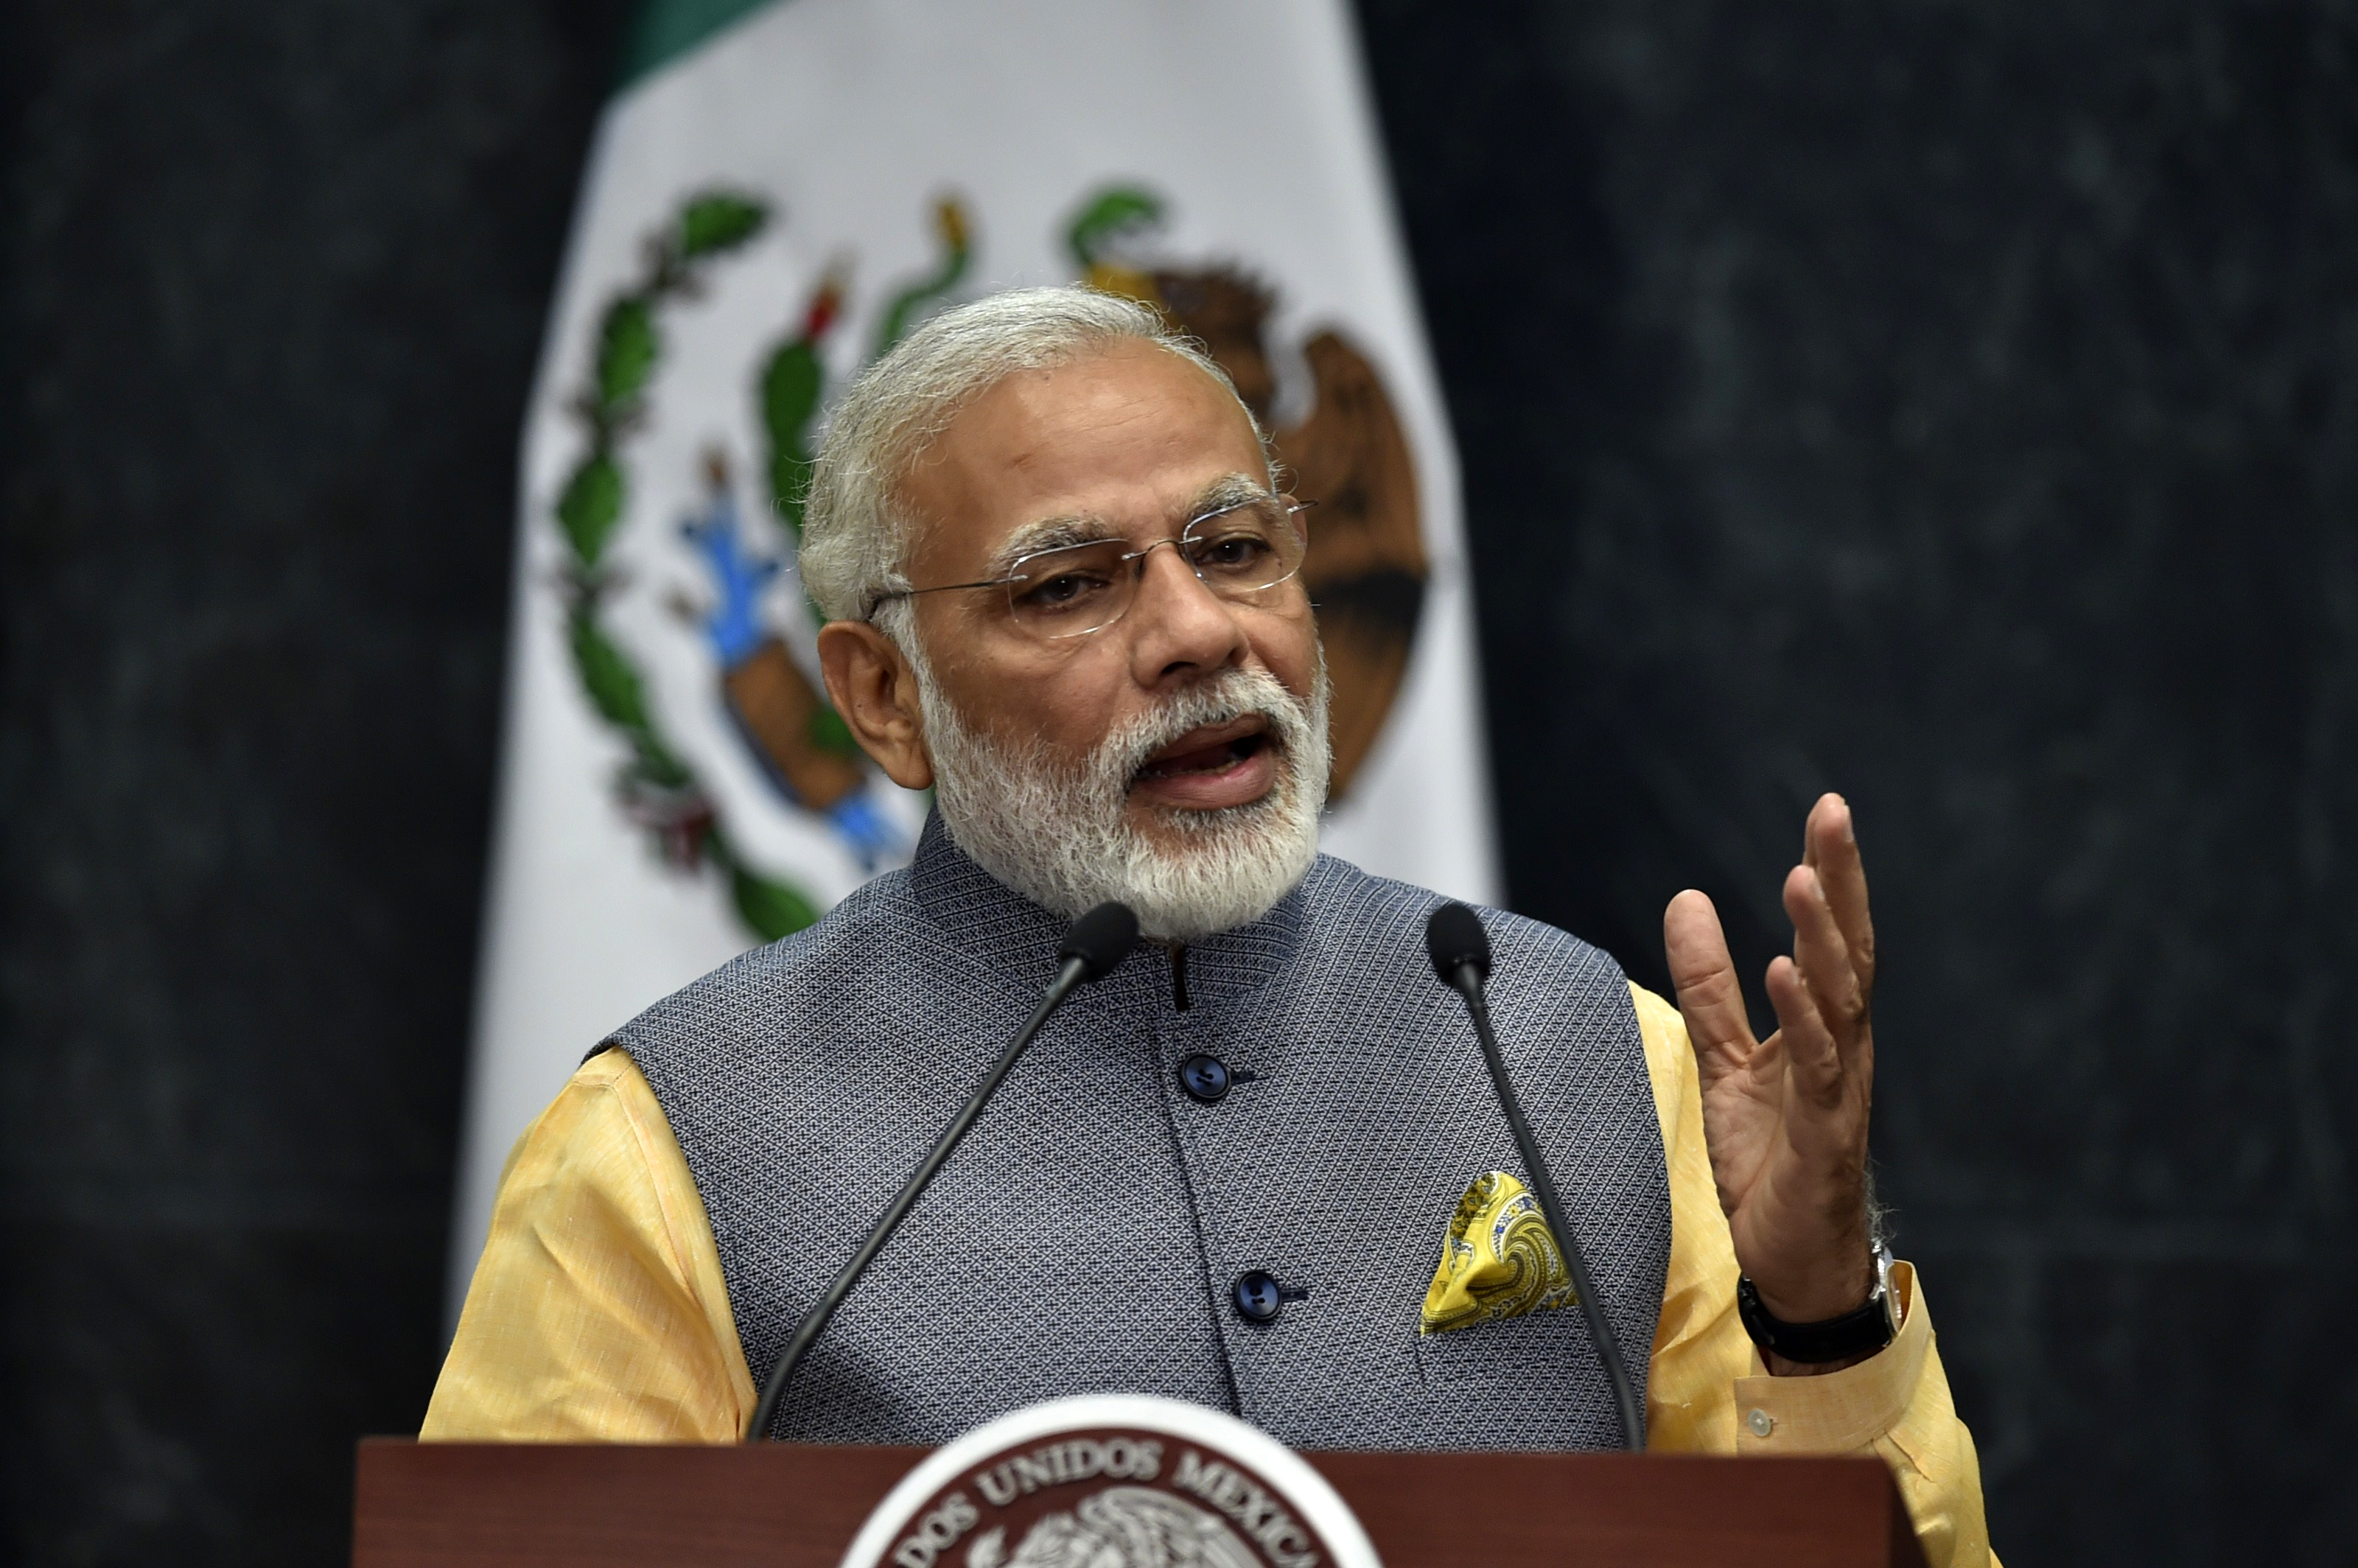 India's Modi Will Discuss Terrorism With Israel